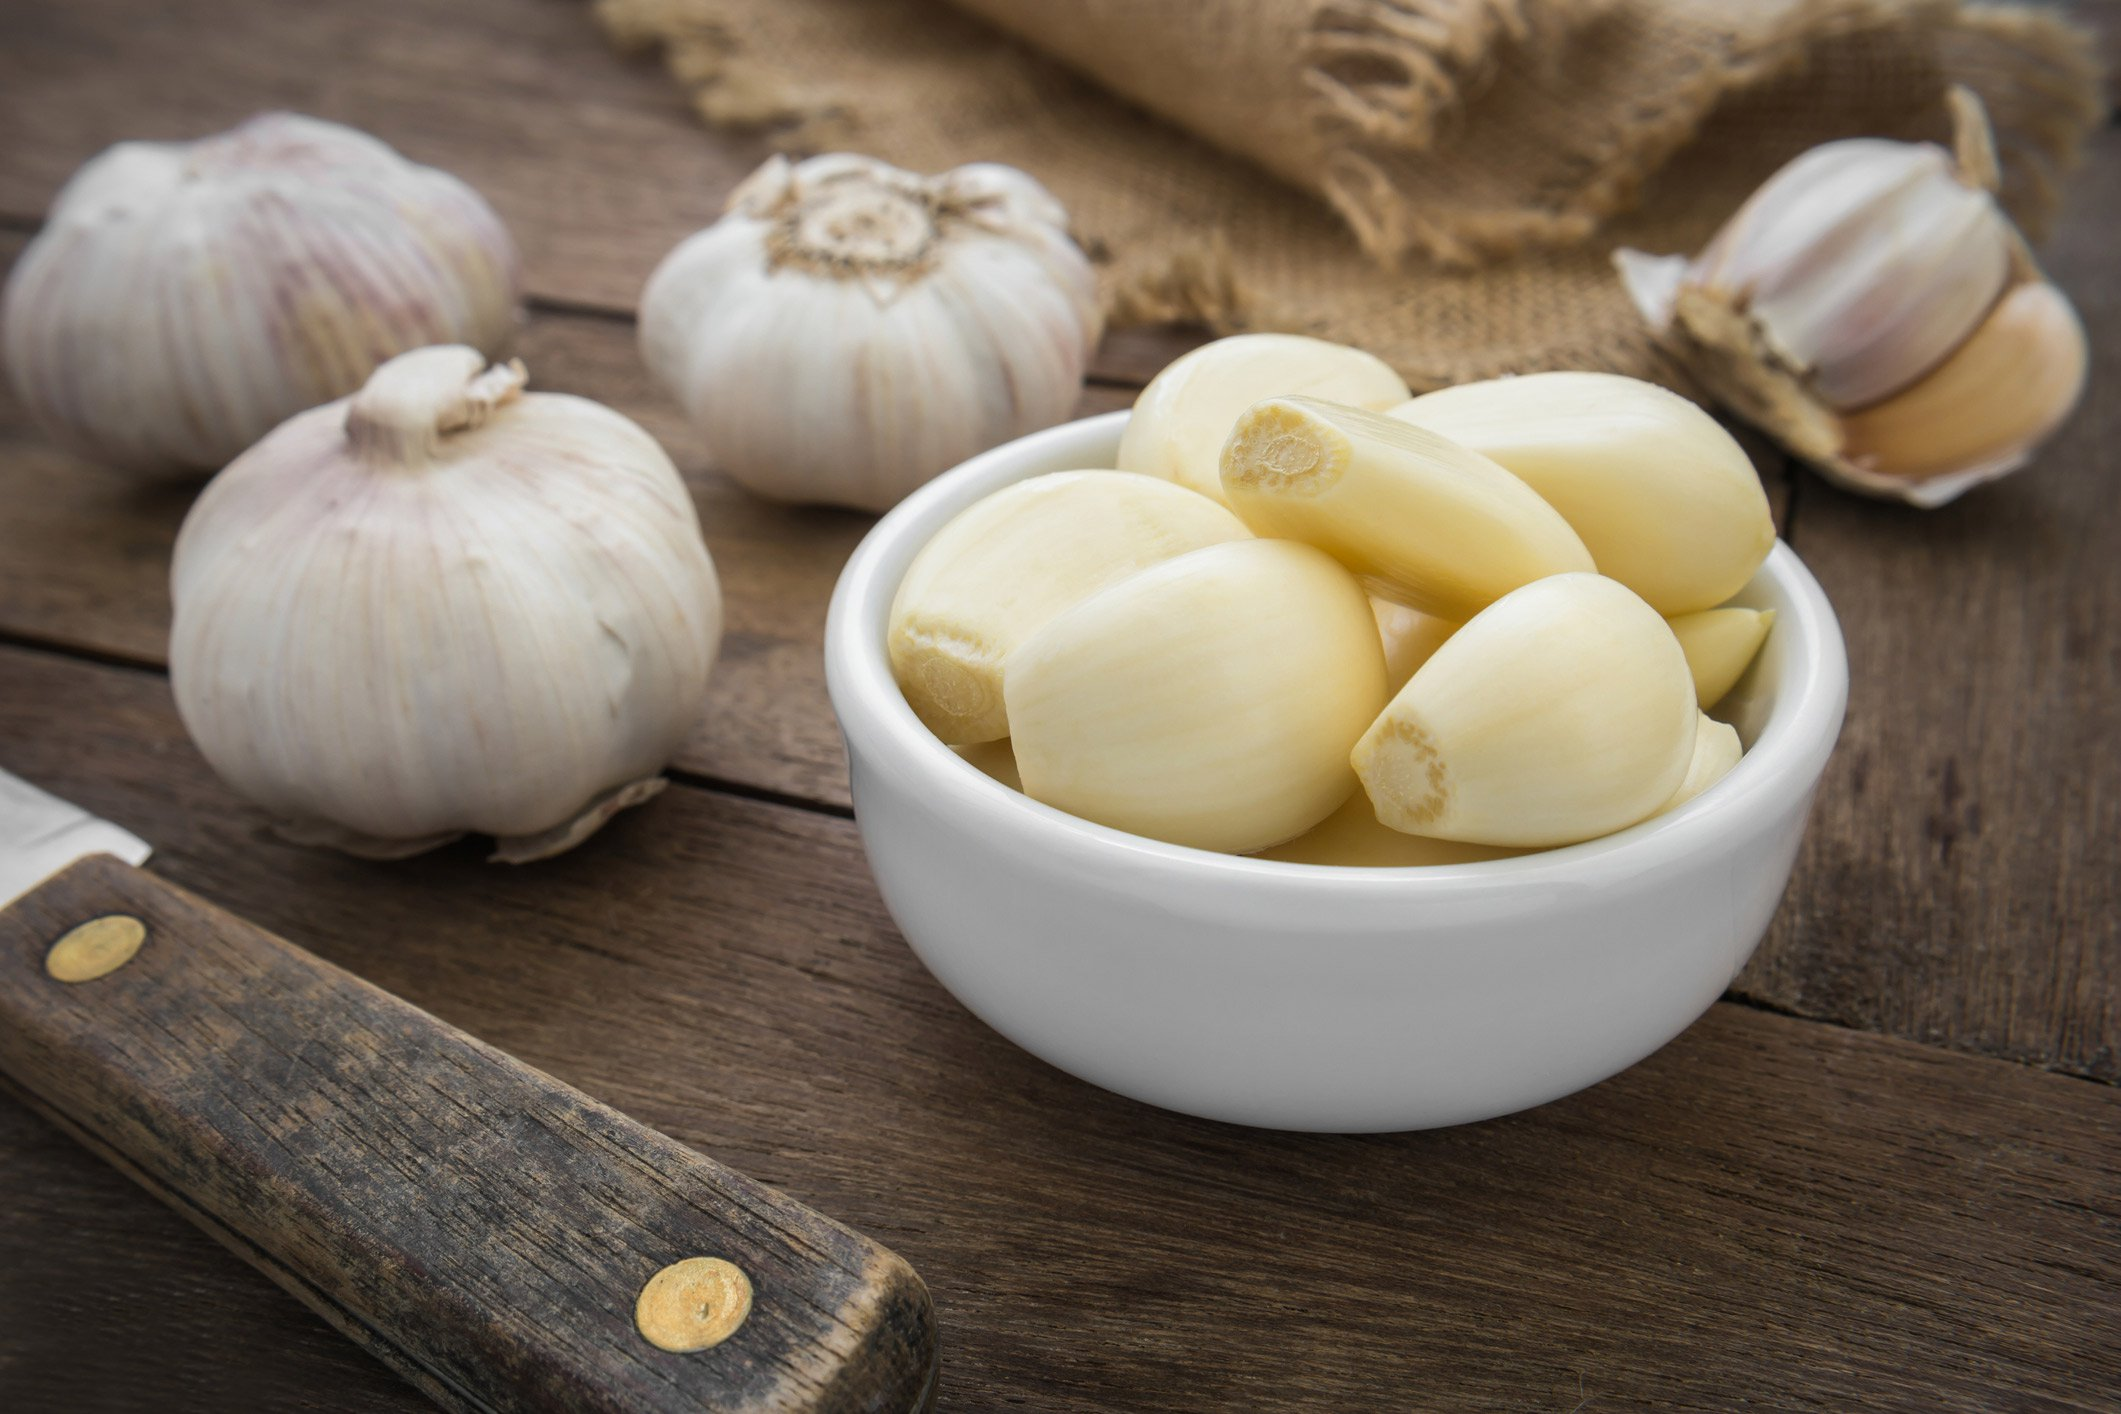 Top detoxifying foods: Garlic